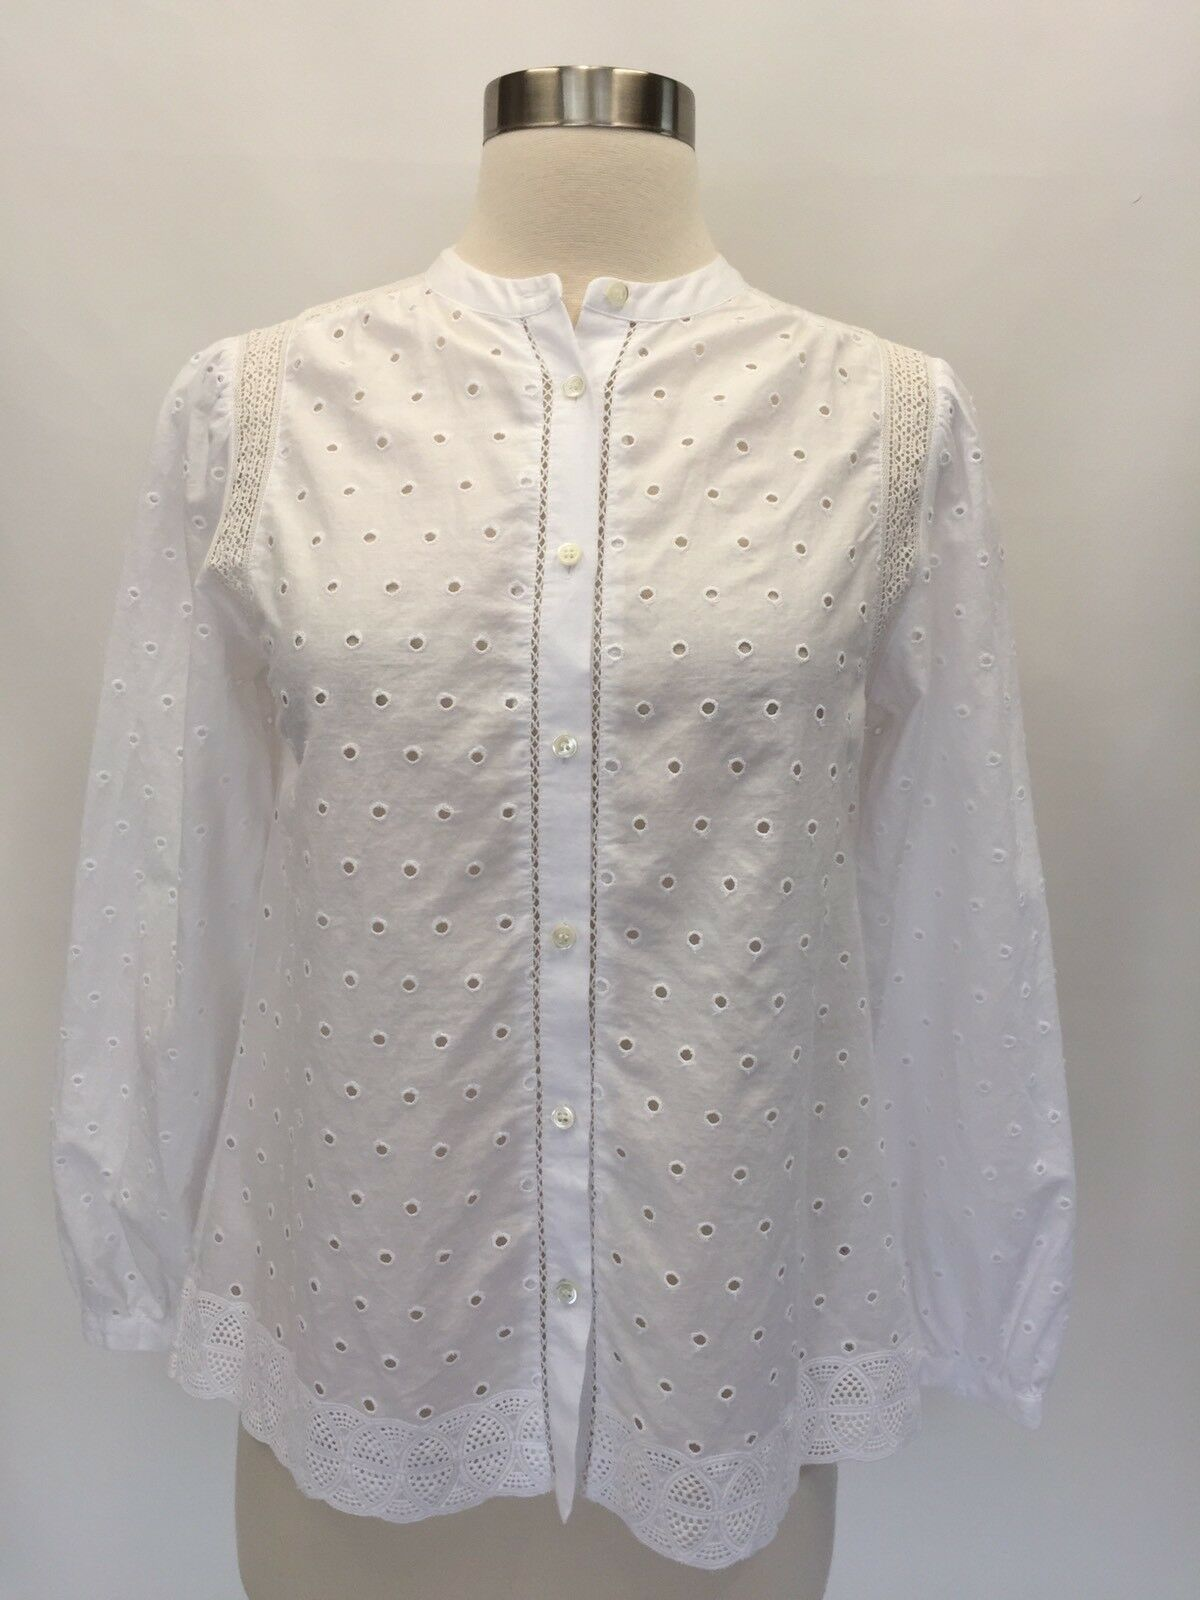 J Crew Eyelet Button-up Shirt Top Blouse Weiß Sz 00 G1150 Sold Out